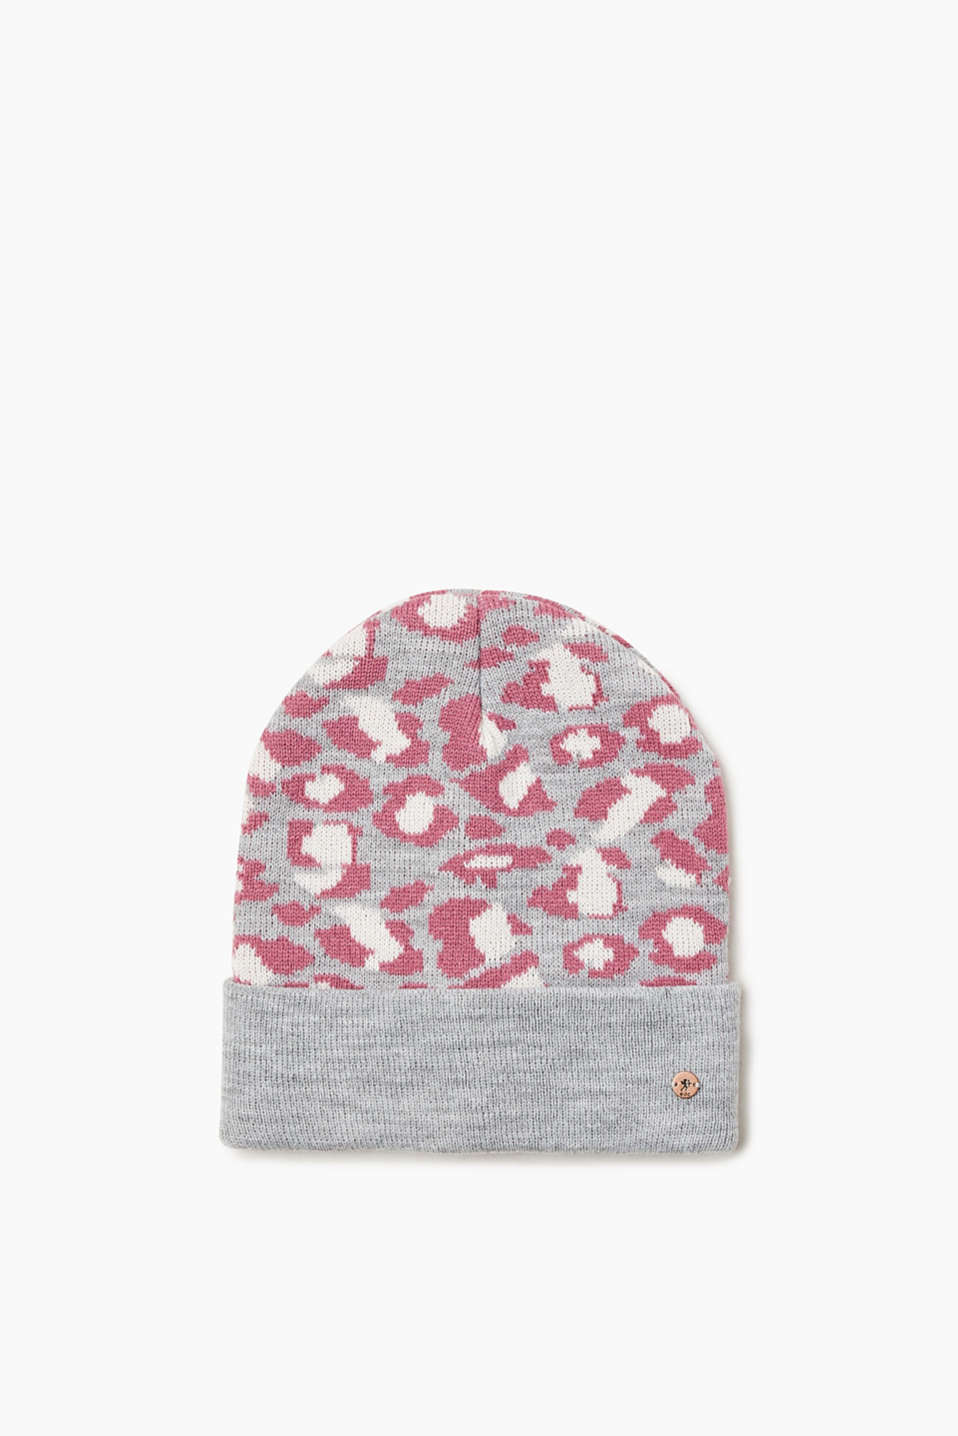 This beanie makes a statement! The leopard pattern is bold and eye-catching.